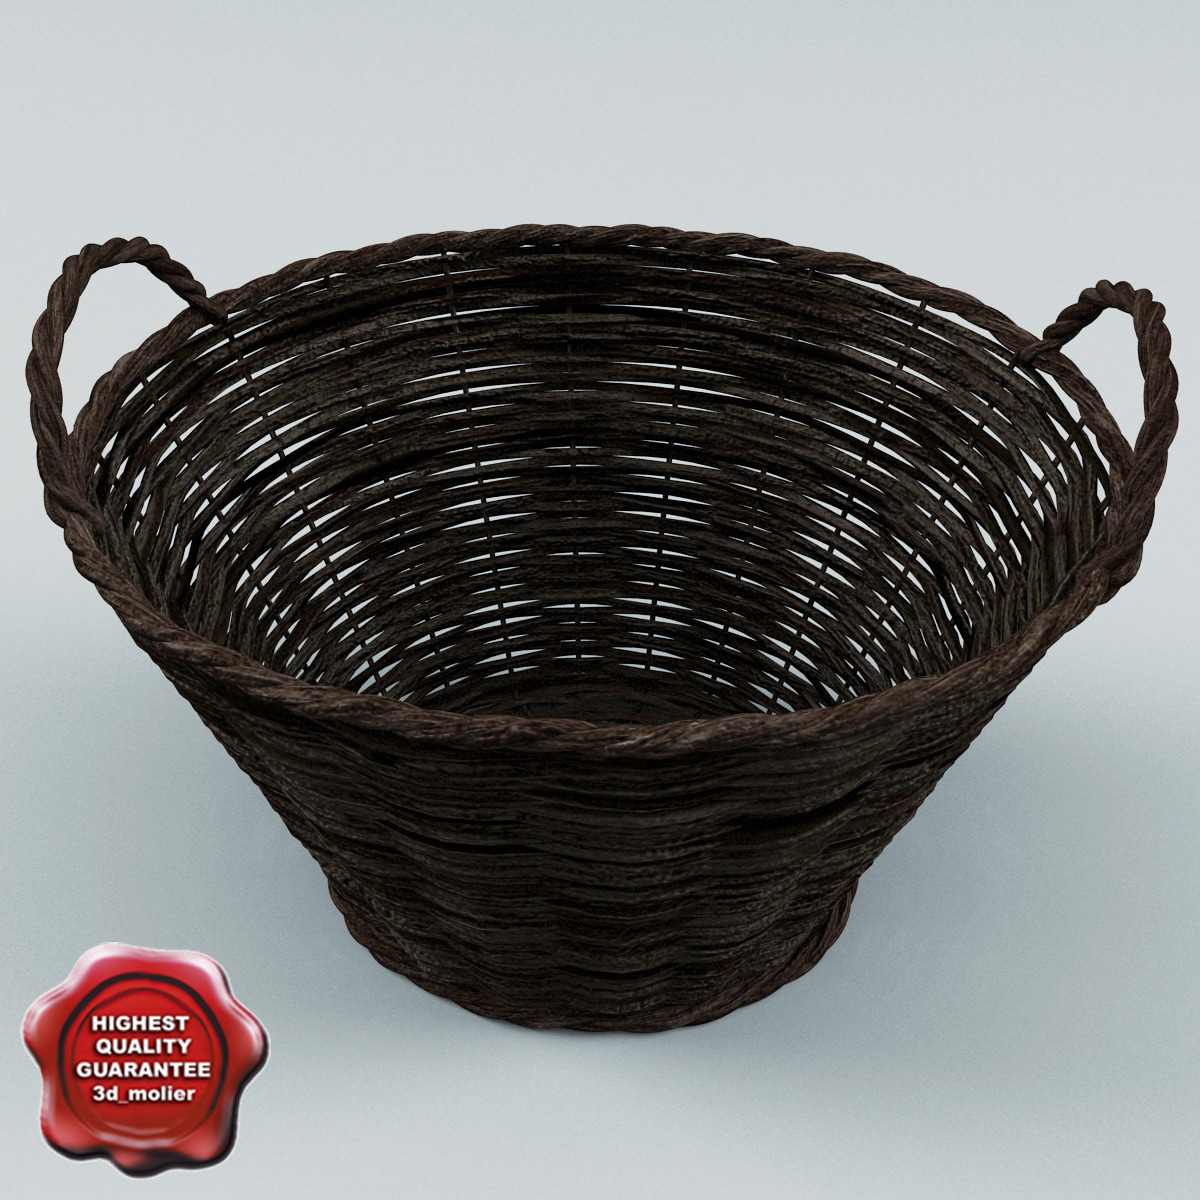 Wicker_Basket_00.jpg